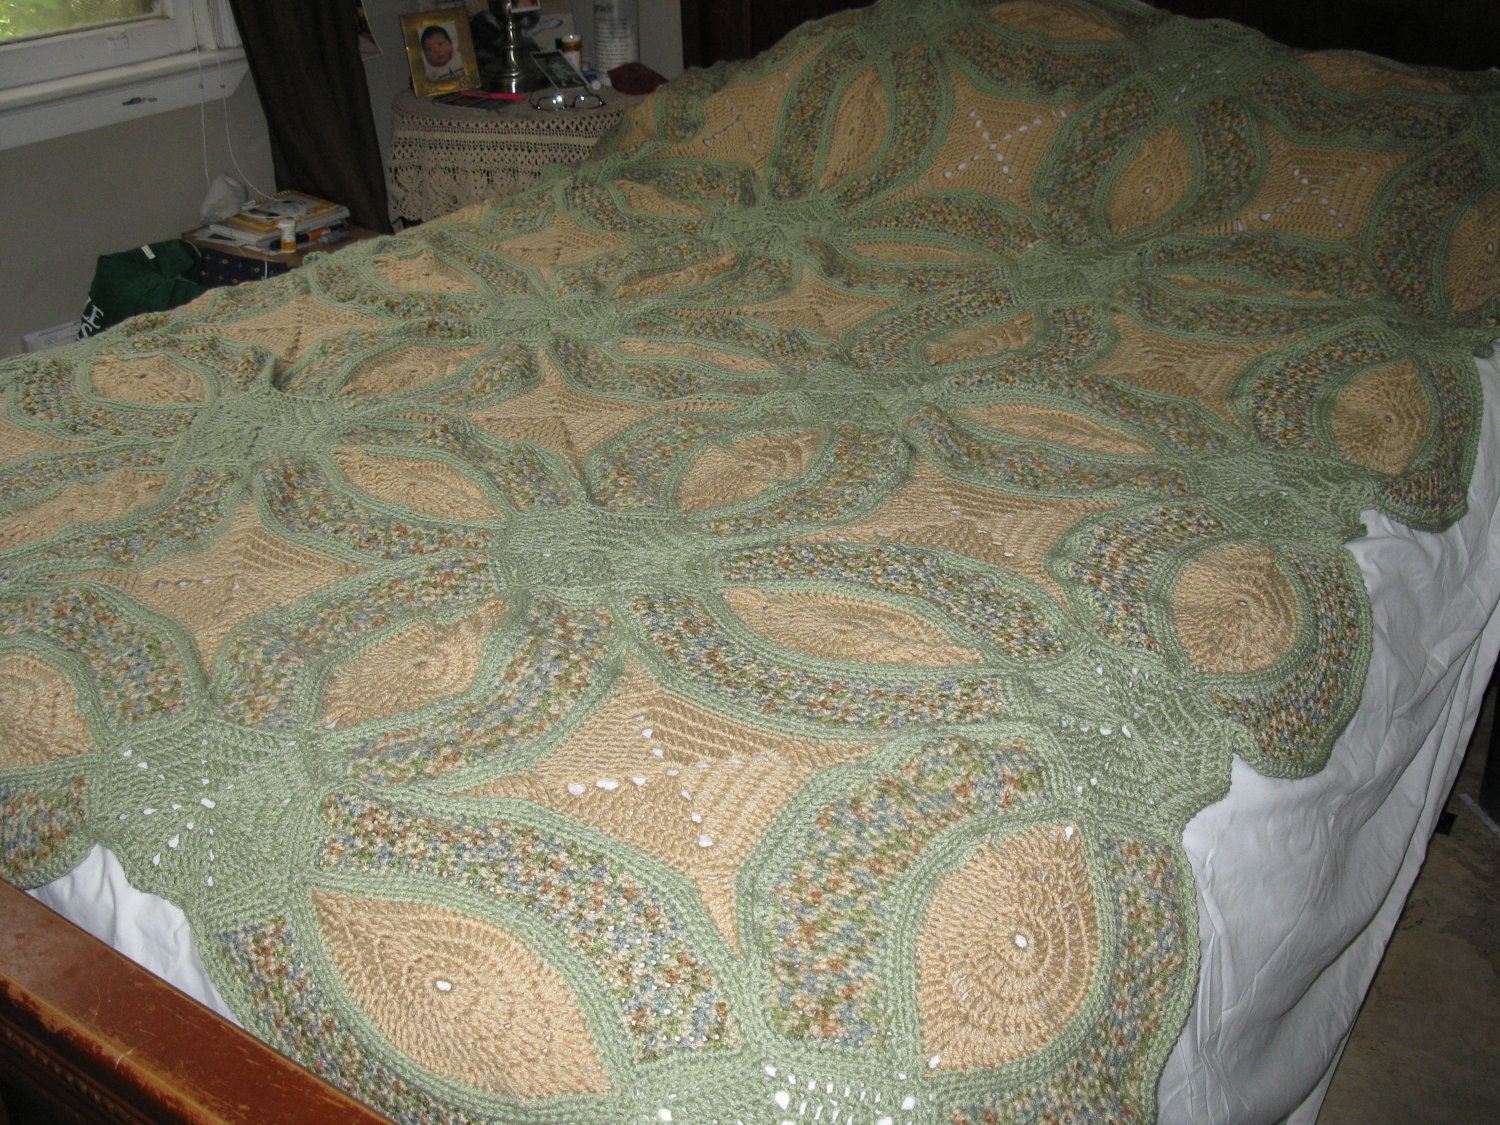 Finally finished my afghan Crochet ideas Pinterest Crochet